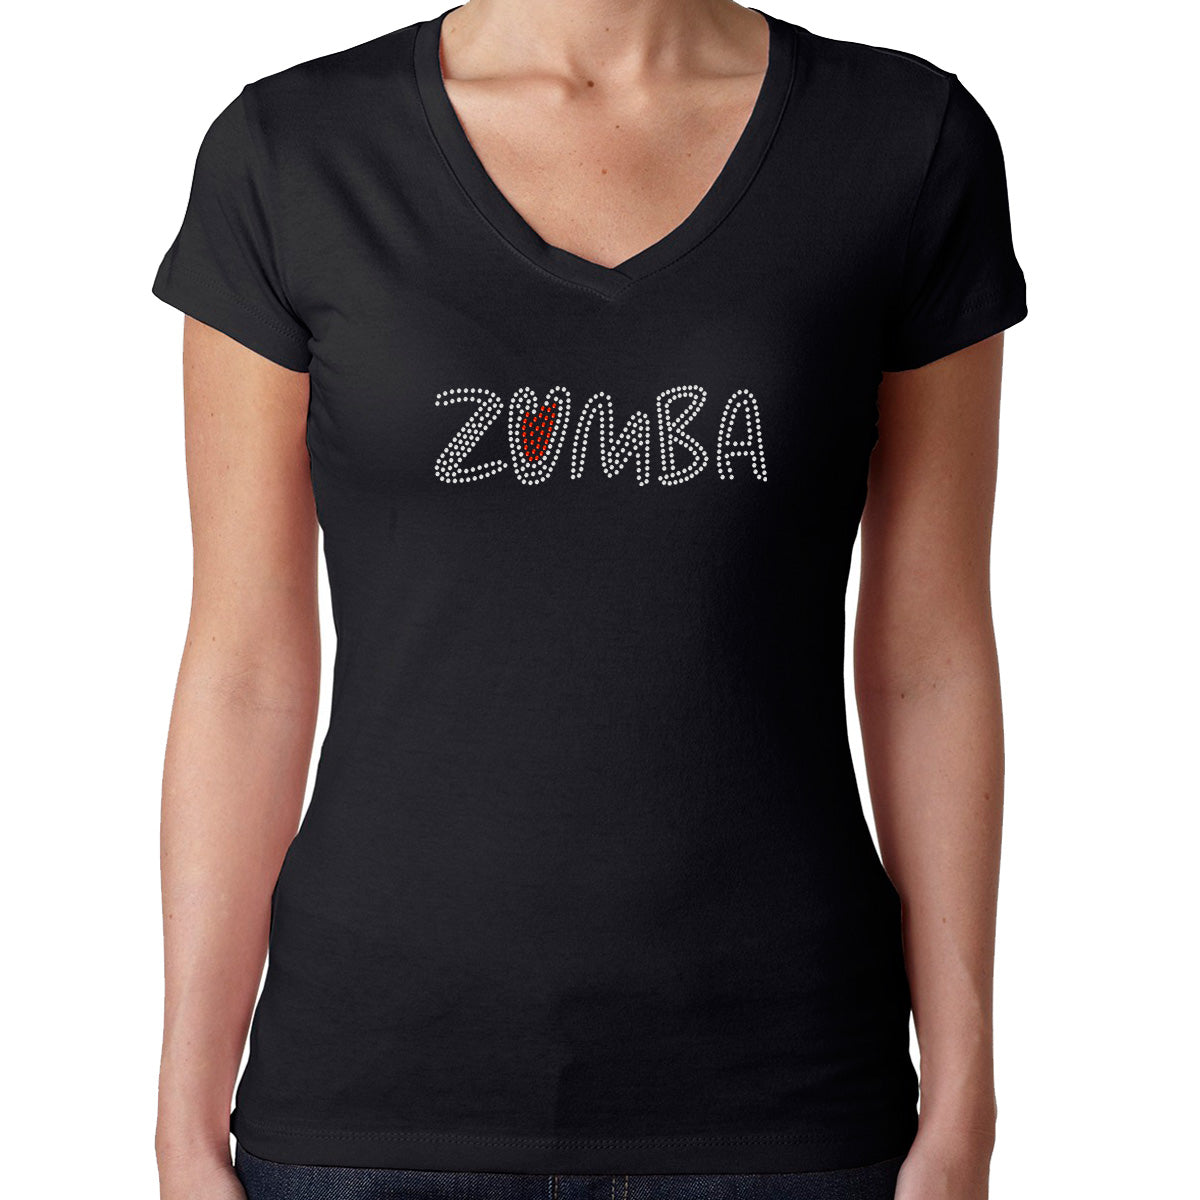 Womens T-Shirt Rhinestone Bling Black Fitted Tee Zumba Dance Red Heart Fitness